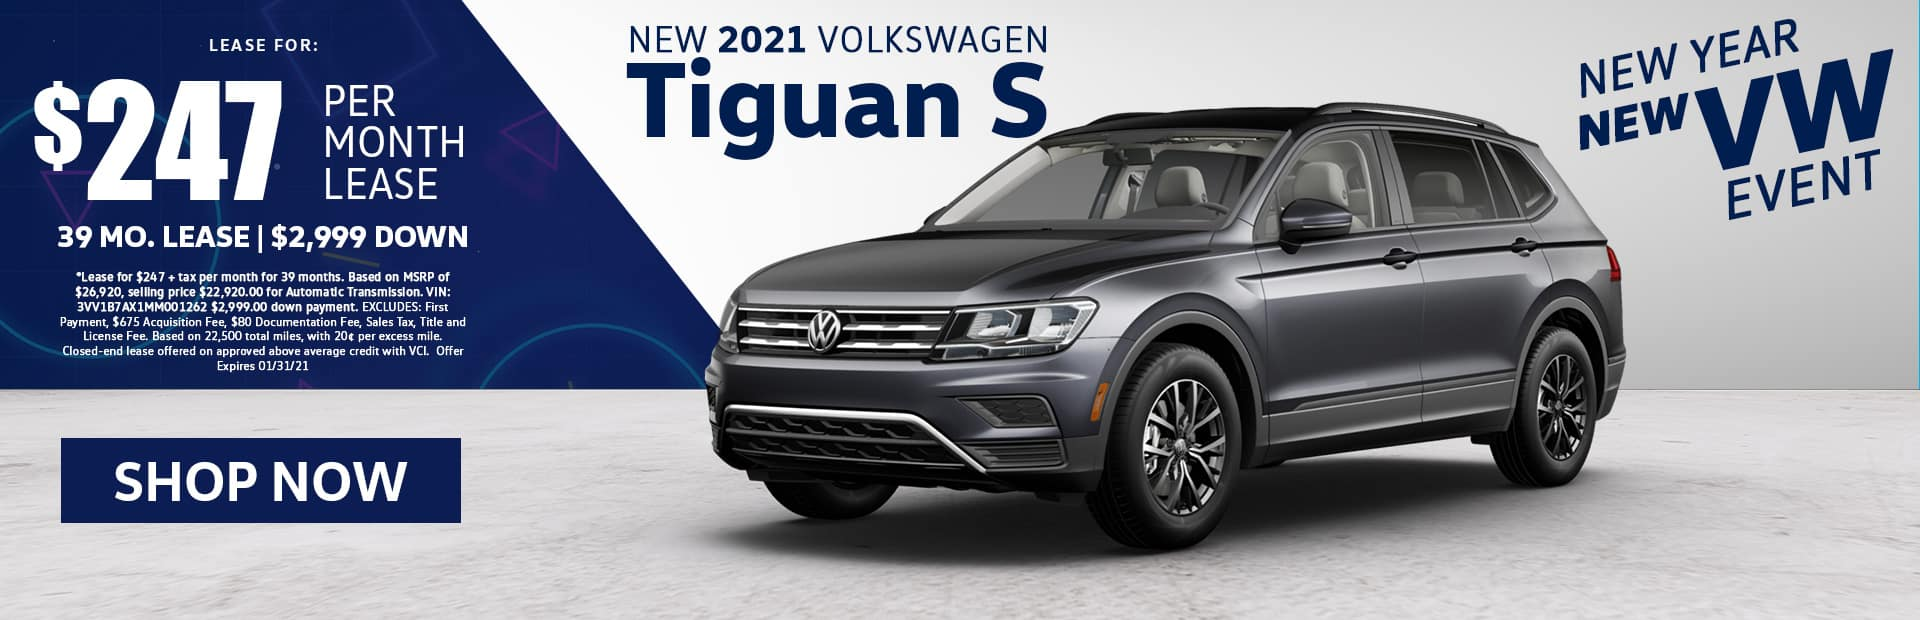 2021 VW Tiguan S Lease Special